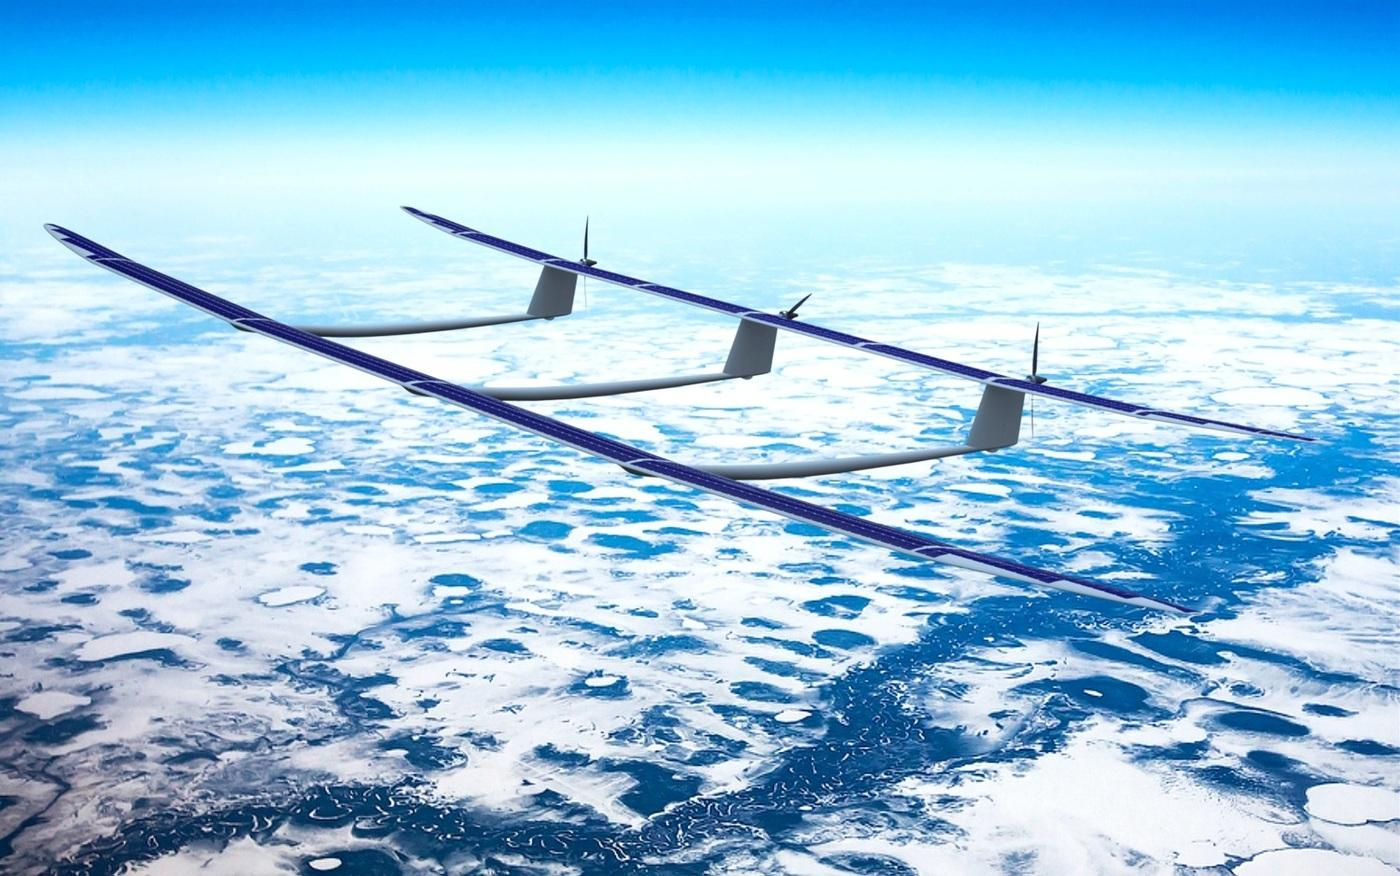 The ApusDuo is an autonomous, solar-powered aircraft designed to soar at the edges of space for long periods of time, and it's just aced its first test flights